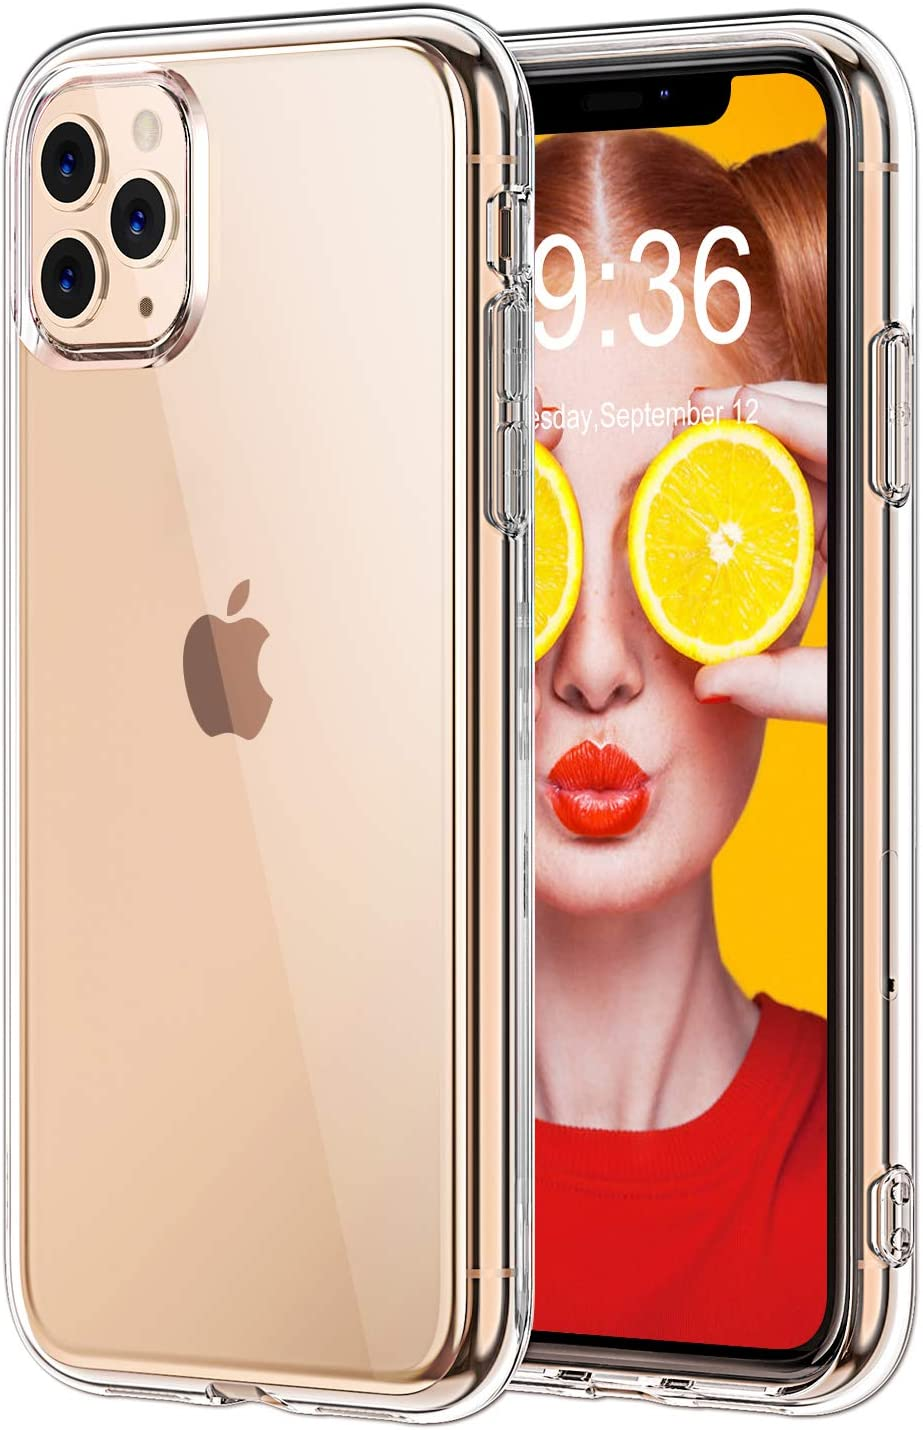 STOON for iPhone 11 Pro Case, Anti-Scratch Shock-Absorption Crystal Clear Phone Cover Case for iPhone 11 Pro, 5.8 inch, 2019